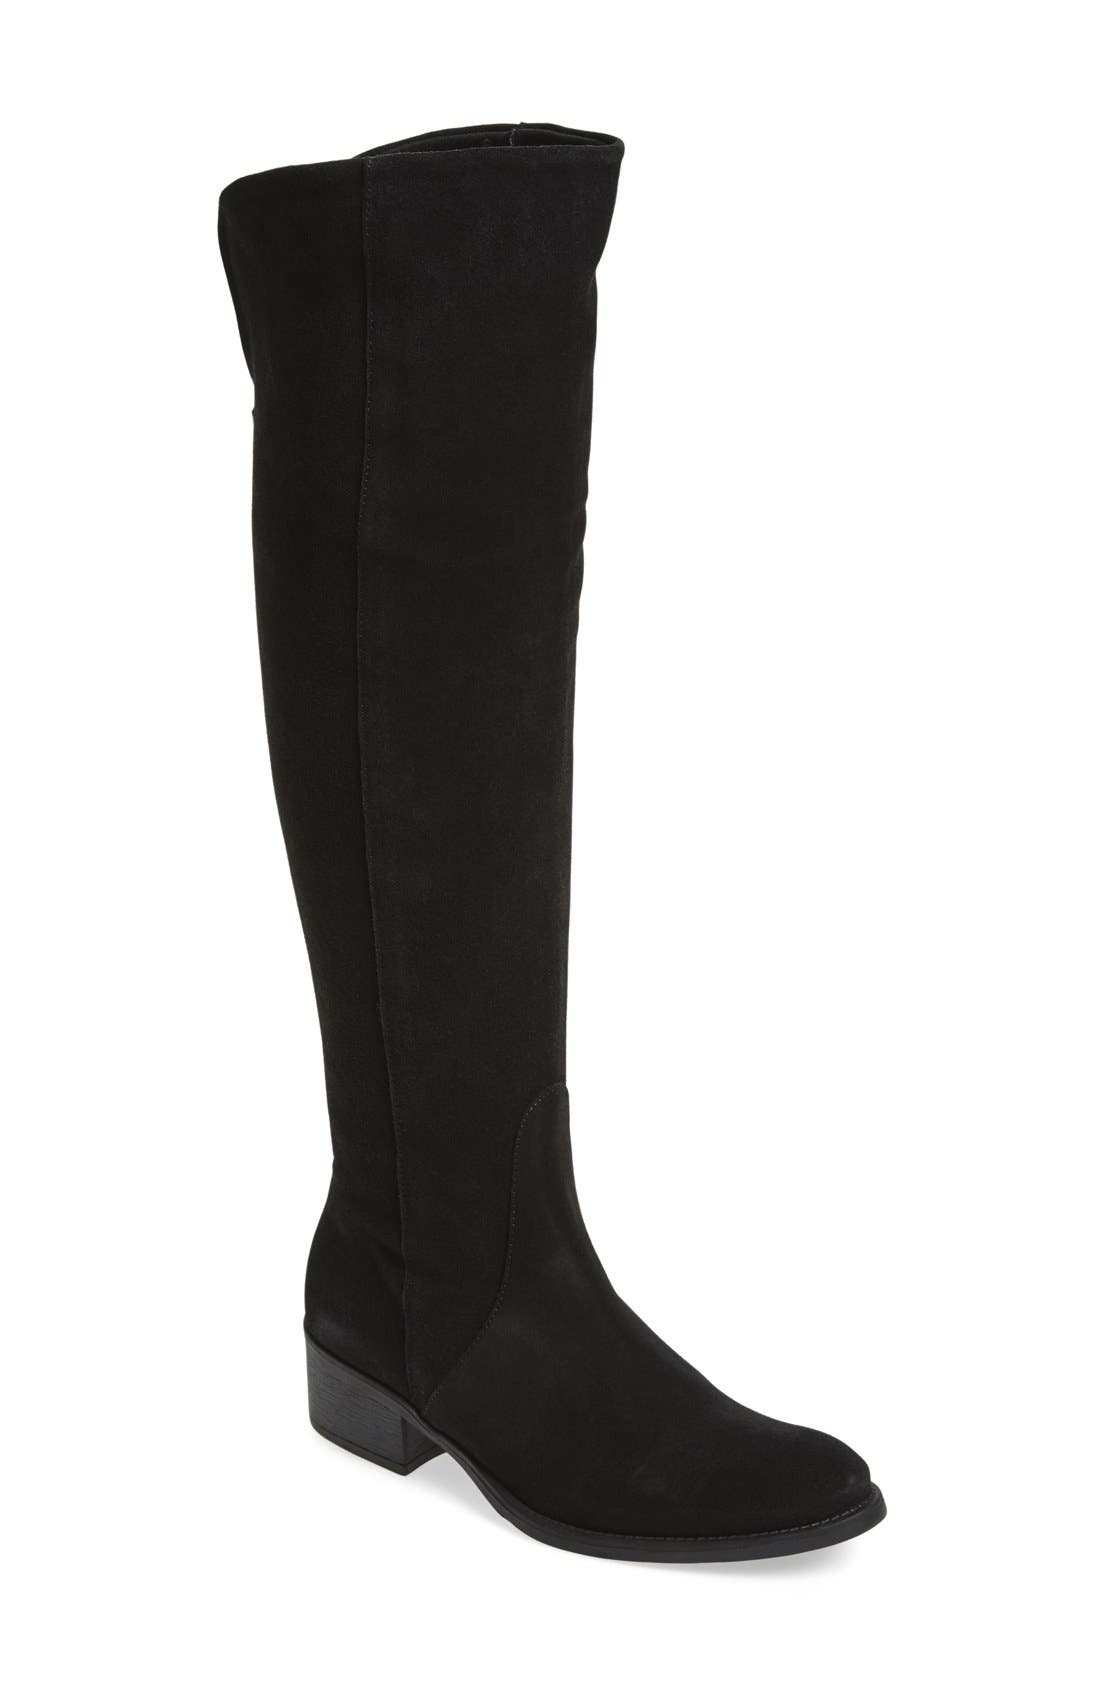 'Tallin' Over-The-Knee Riding Boot, Main, color, BLACK SUEDE